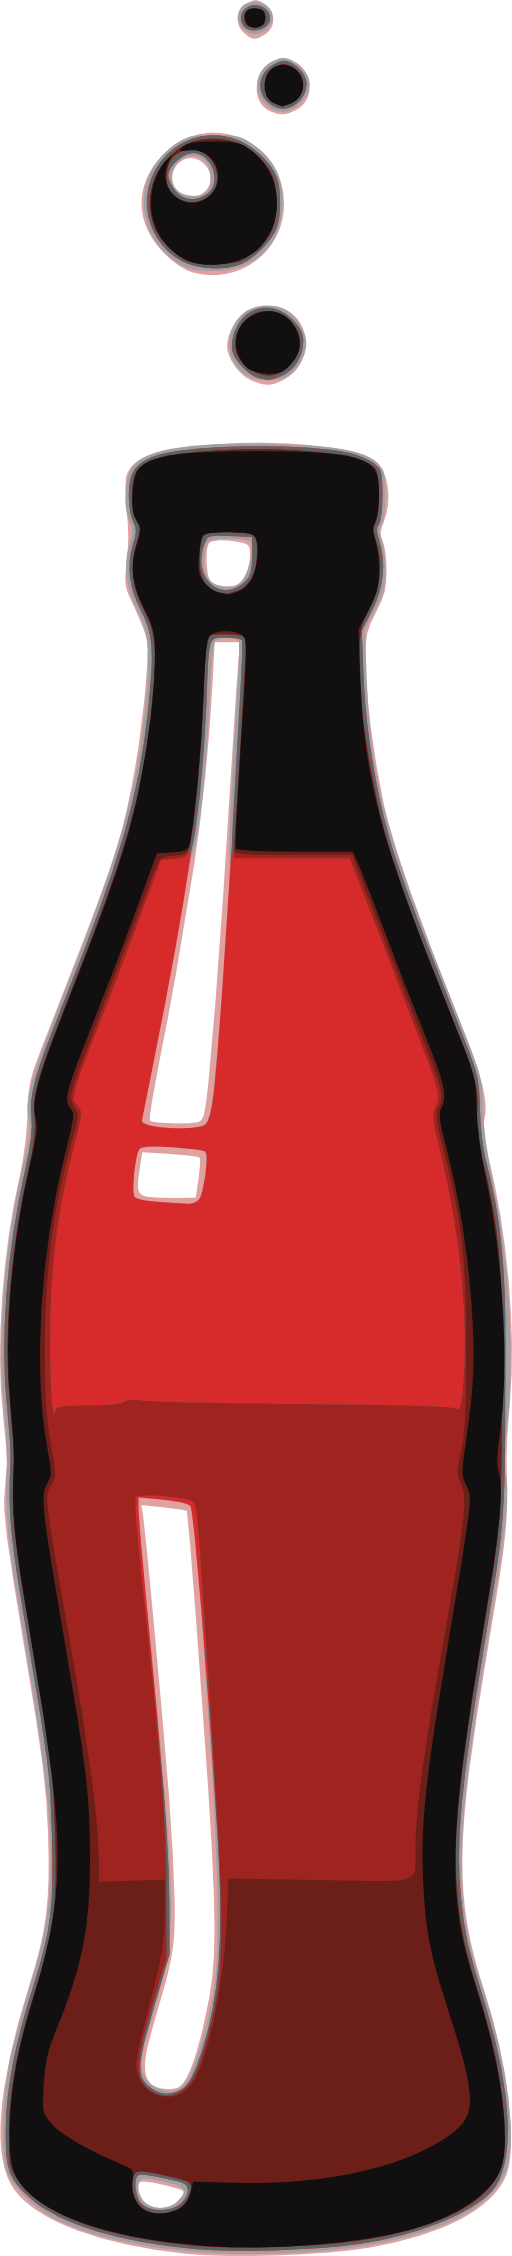 Soda Bottle Clipart Free Clipart Images